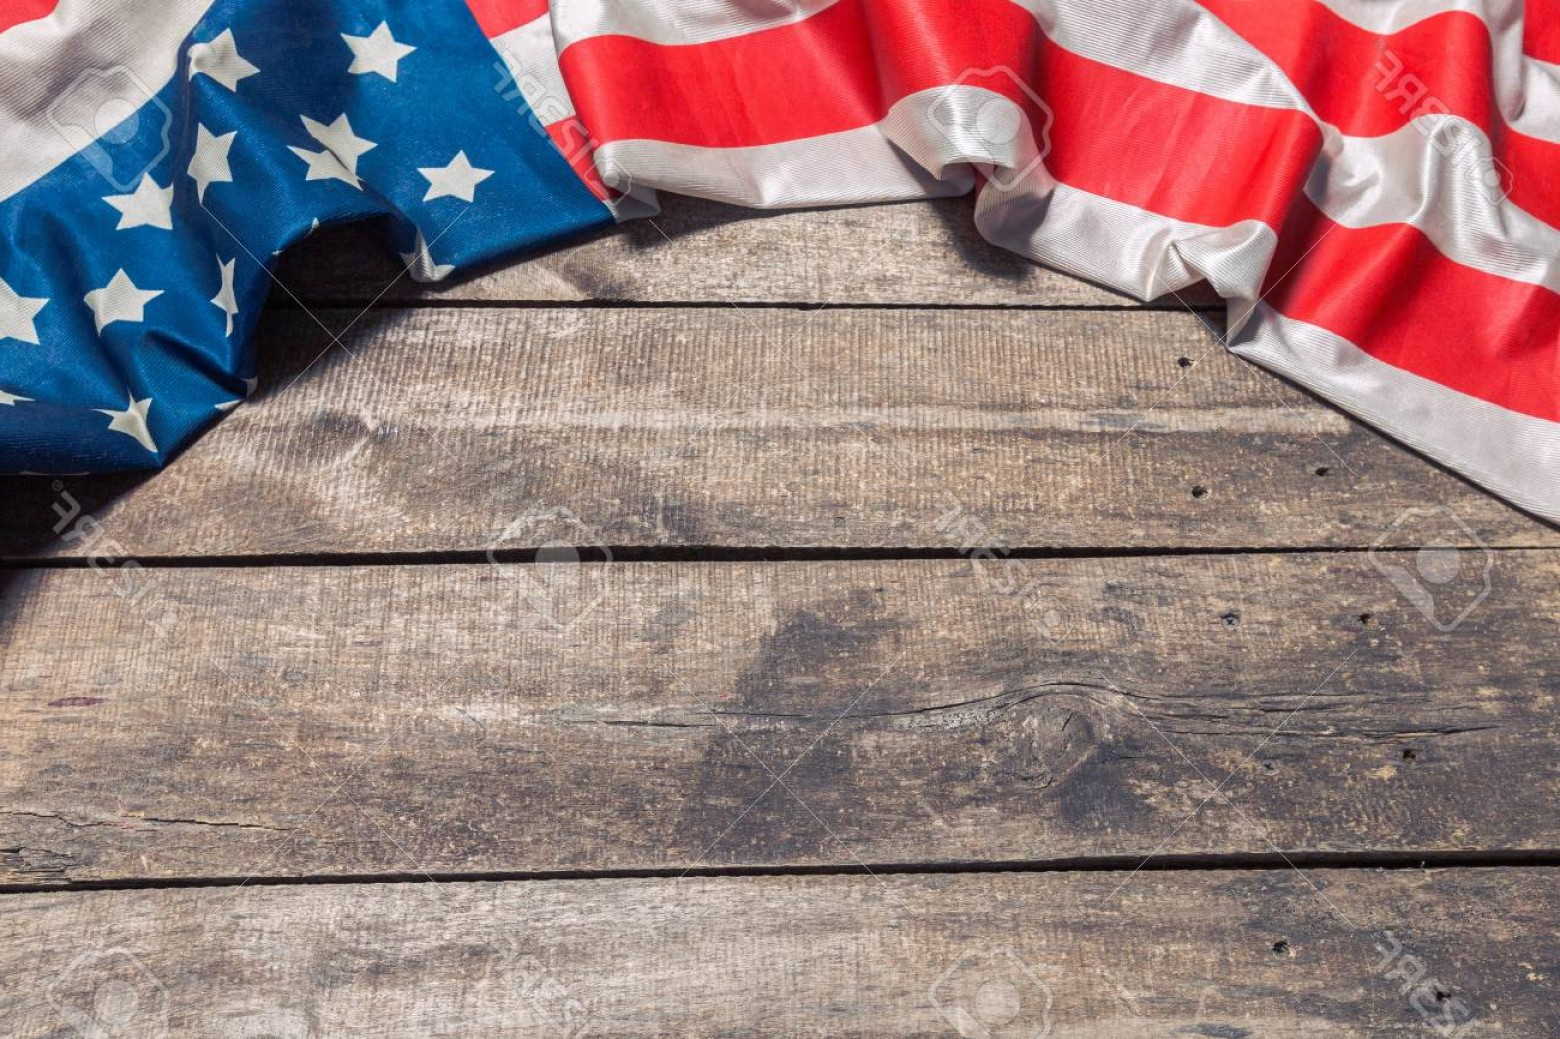 Rustic American Flag Vector: Photoan American Flag Lying On An Aged Weathered Rustic Wooden Background